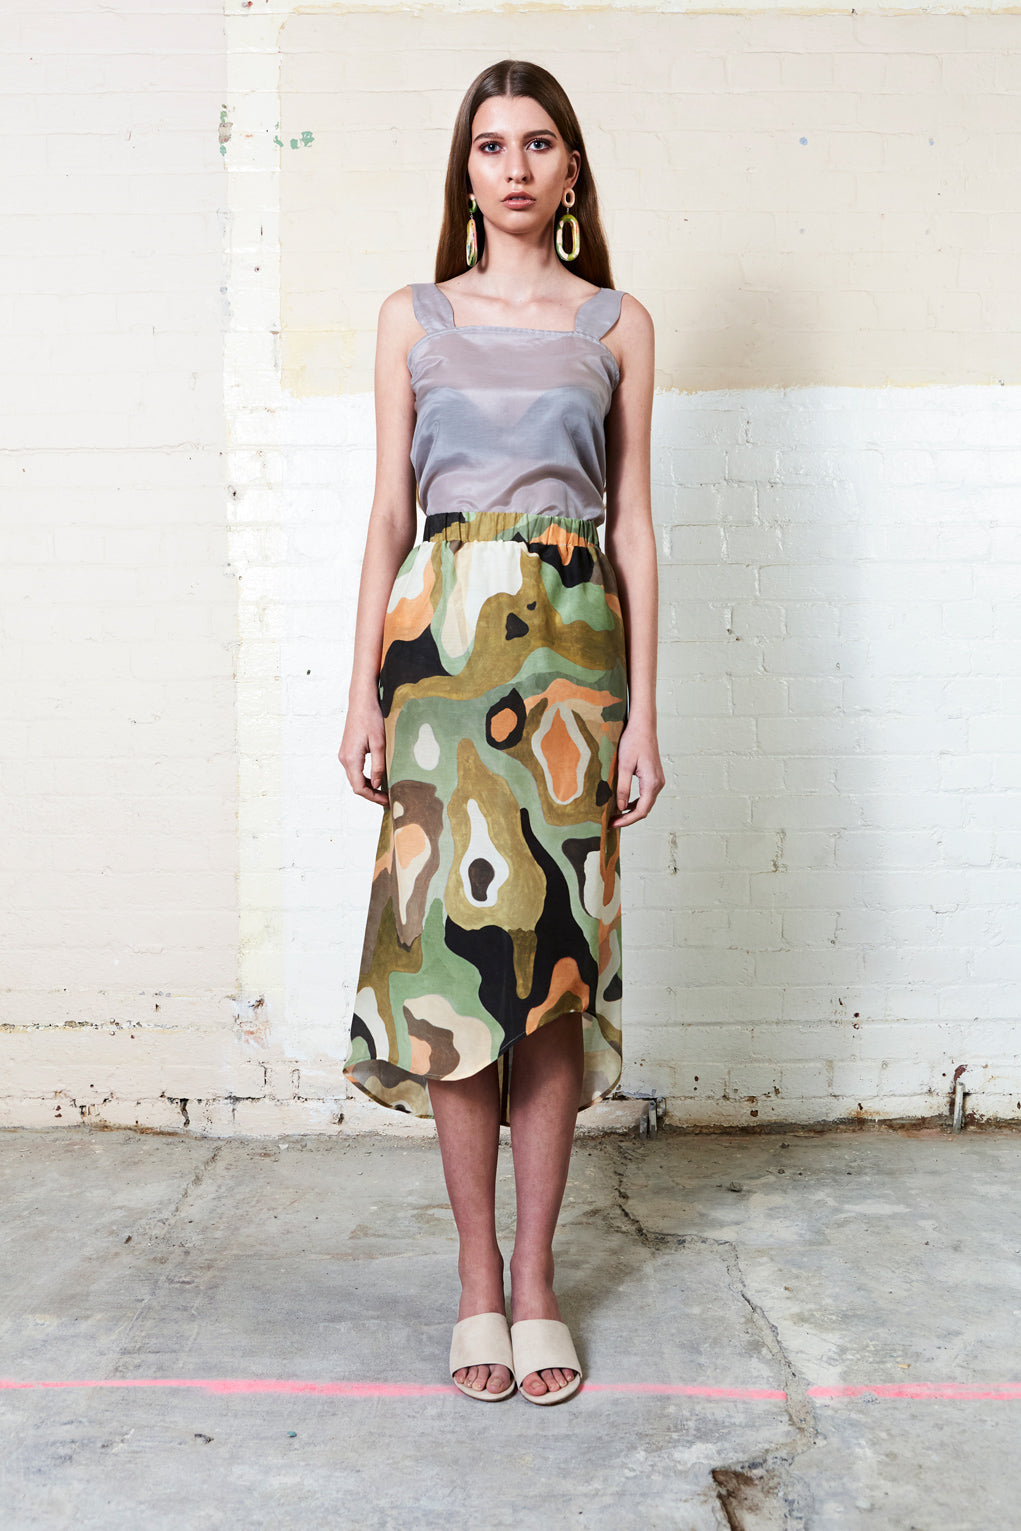 SPOTTED GUM SKIRT